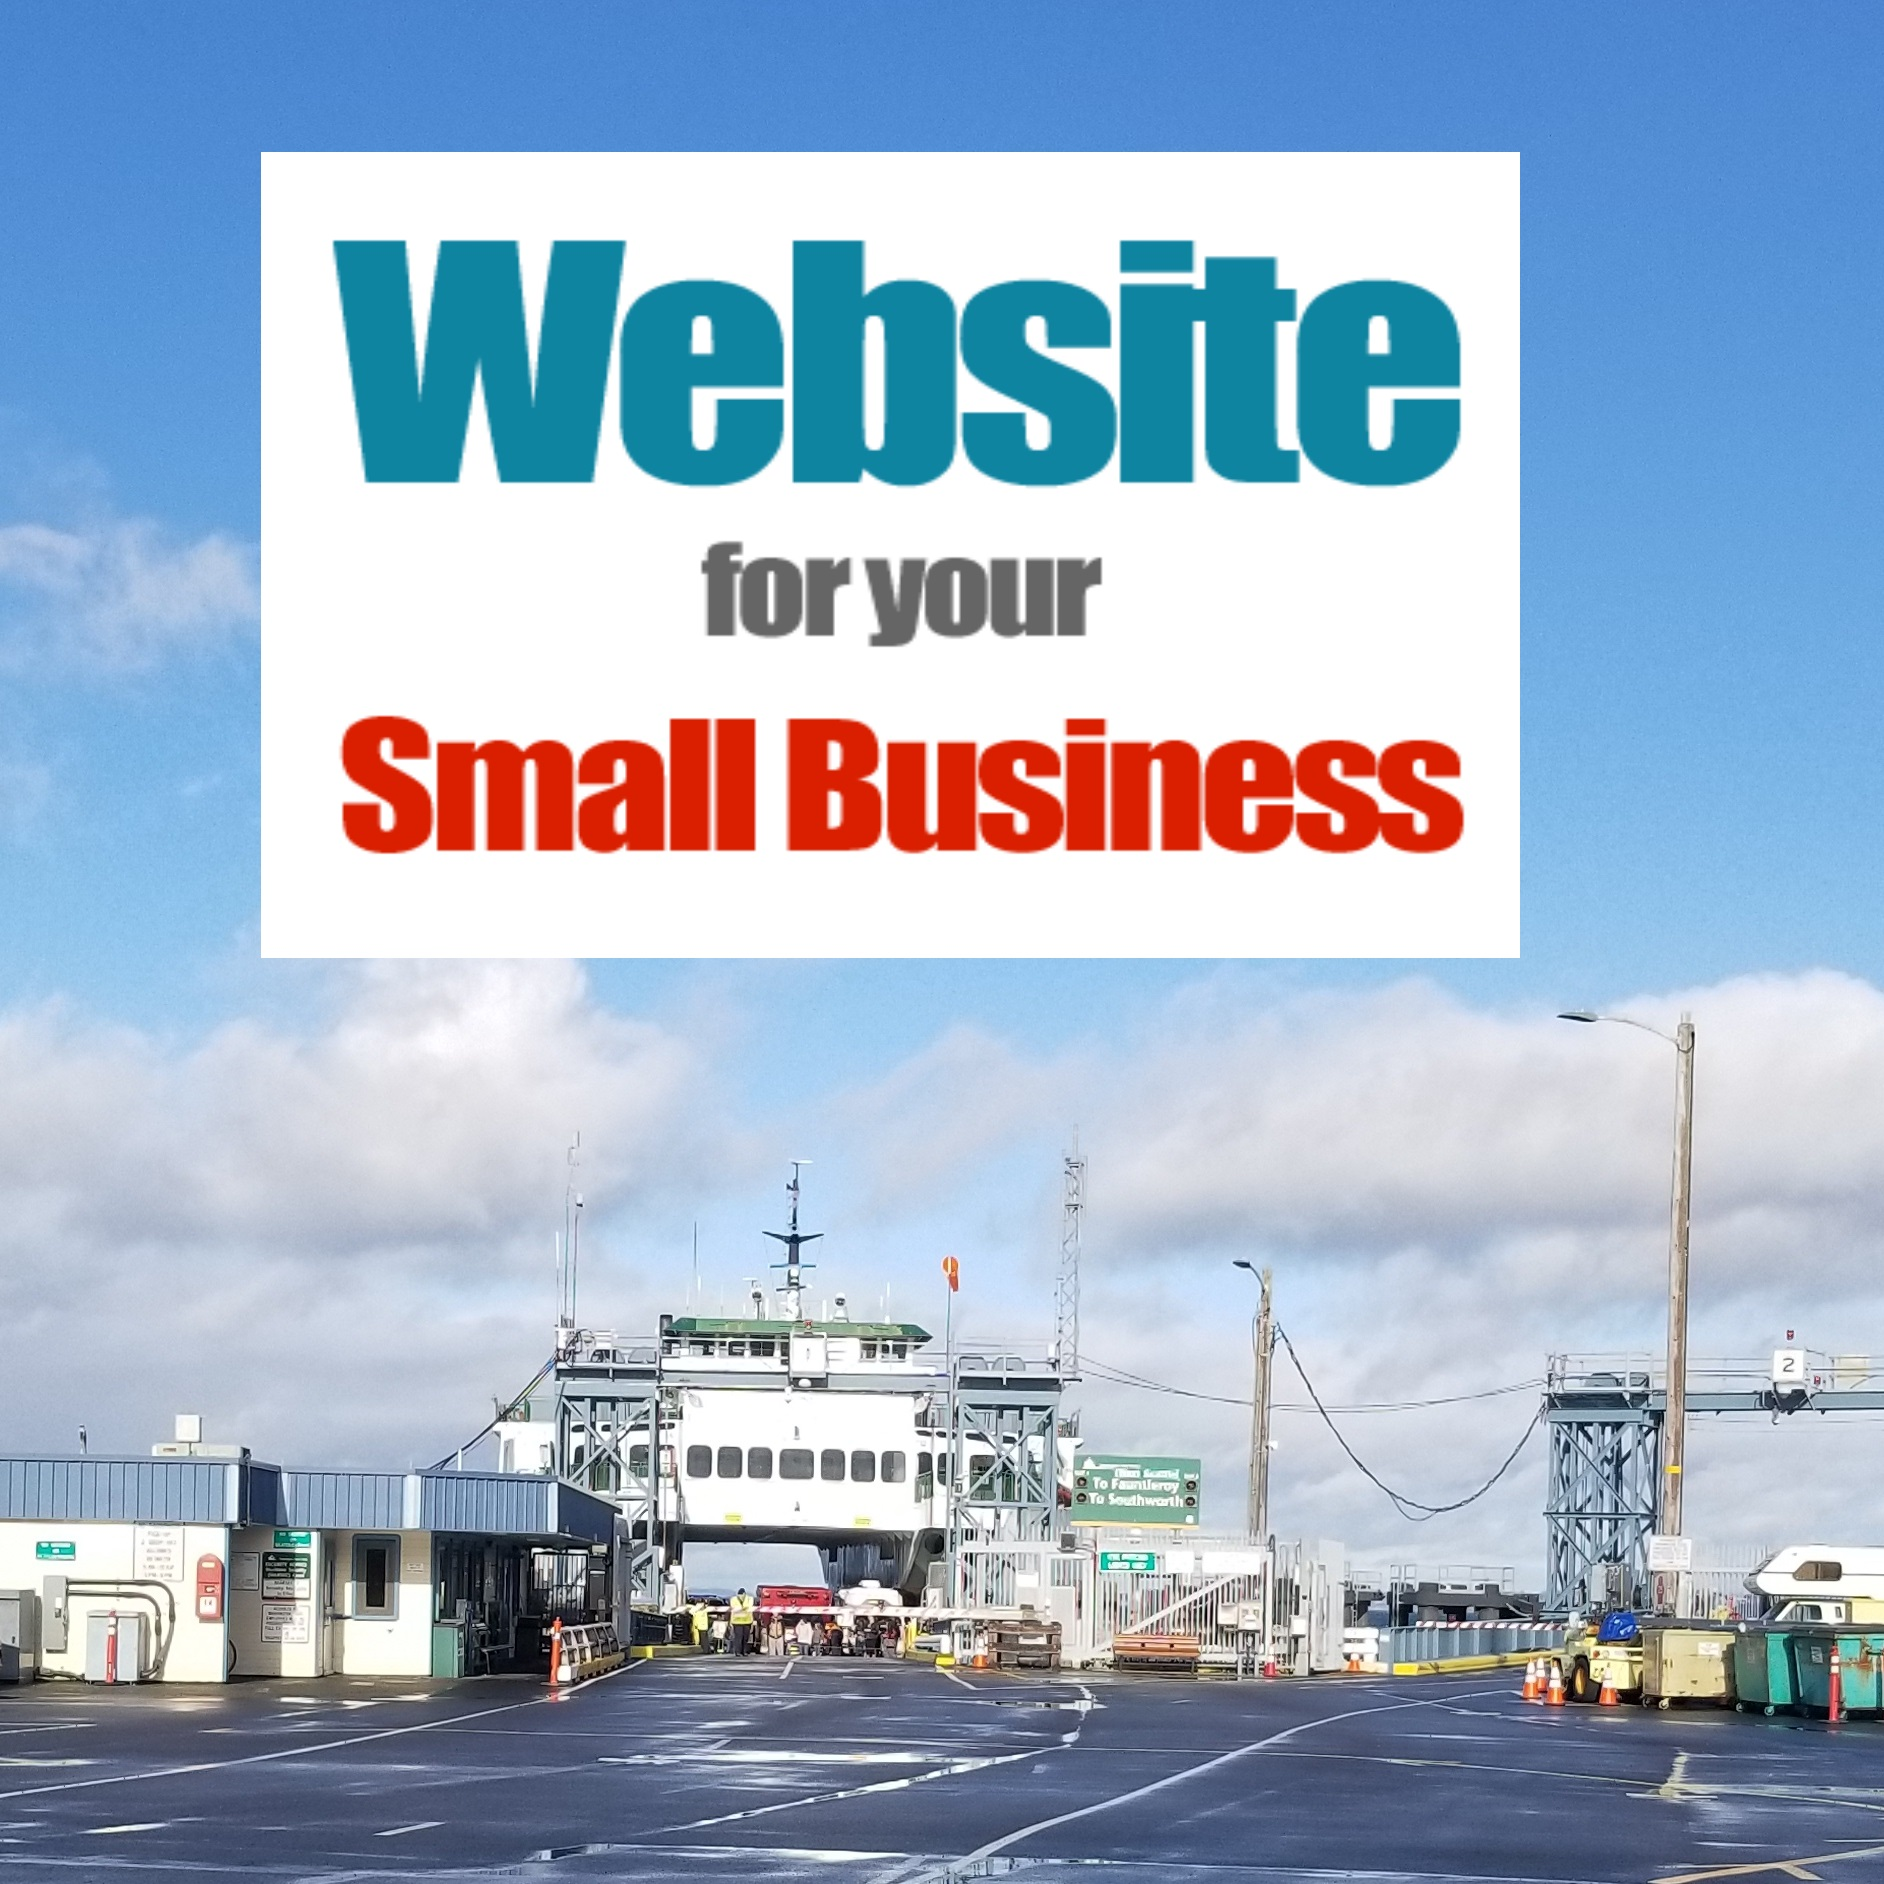 vashon-island-small-business-websites